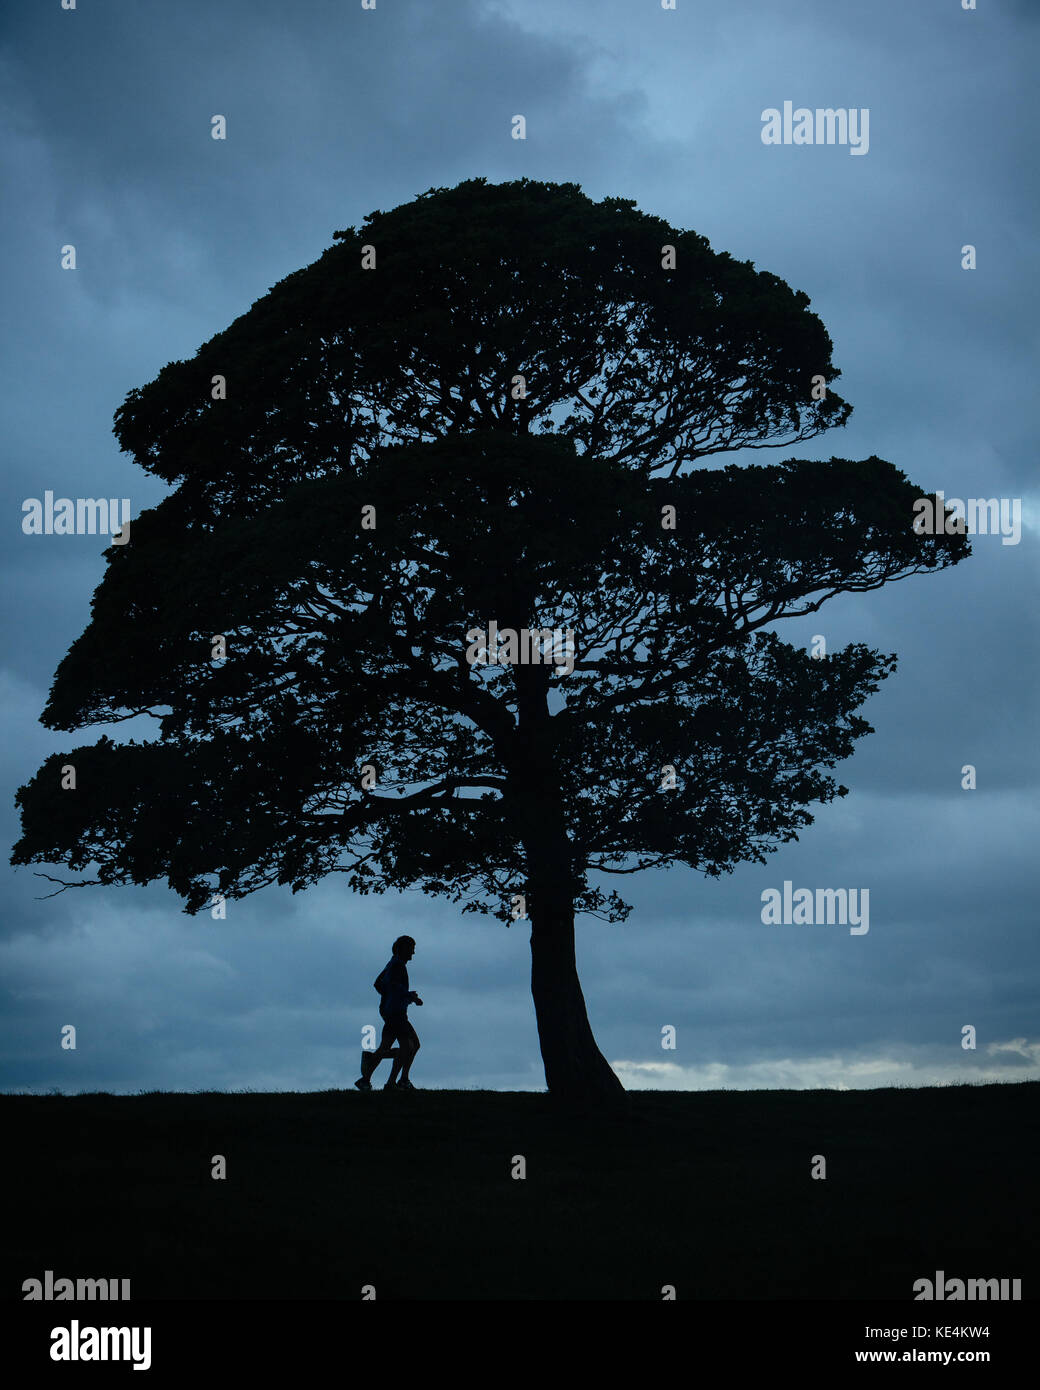 Runners silhouetted against the sky pass by trees in the British countryside. - Stock Image